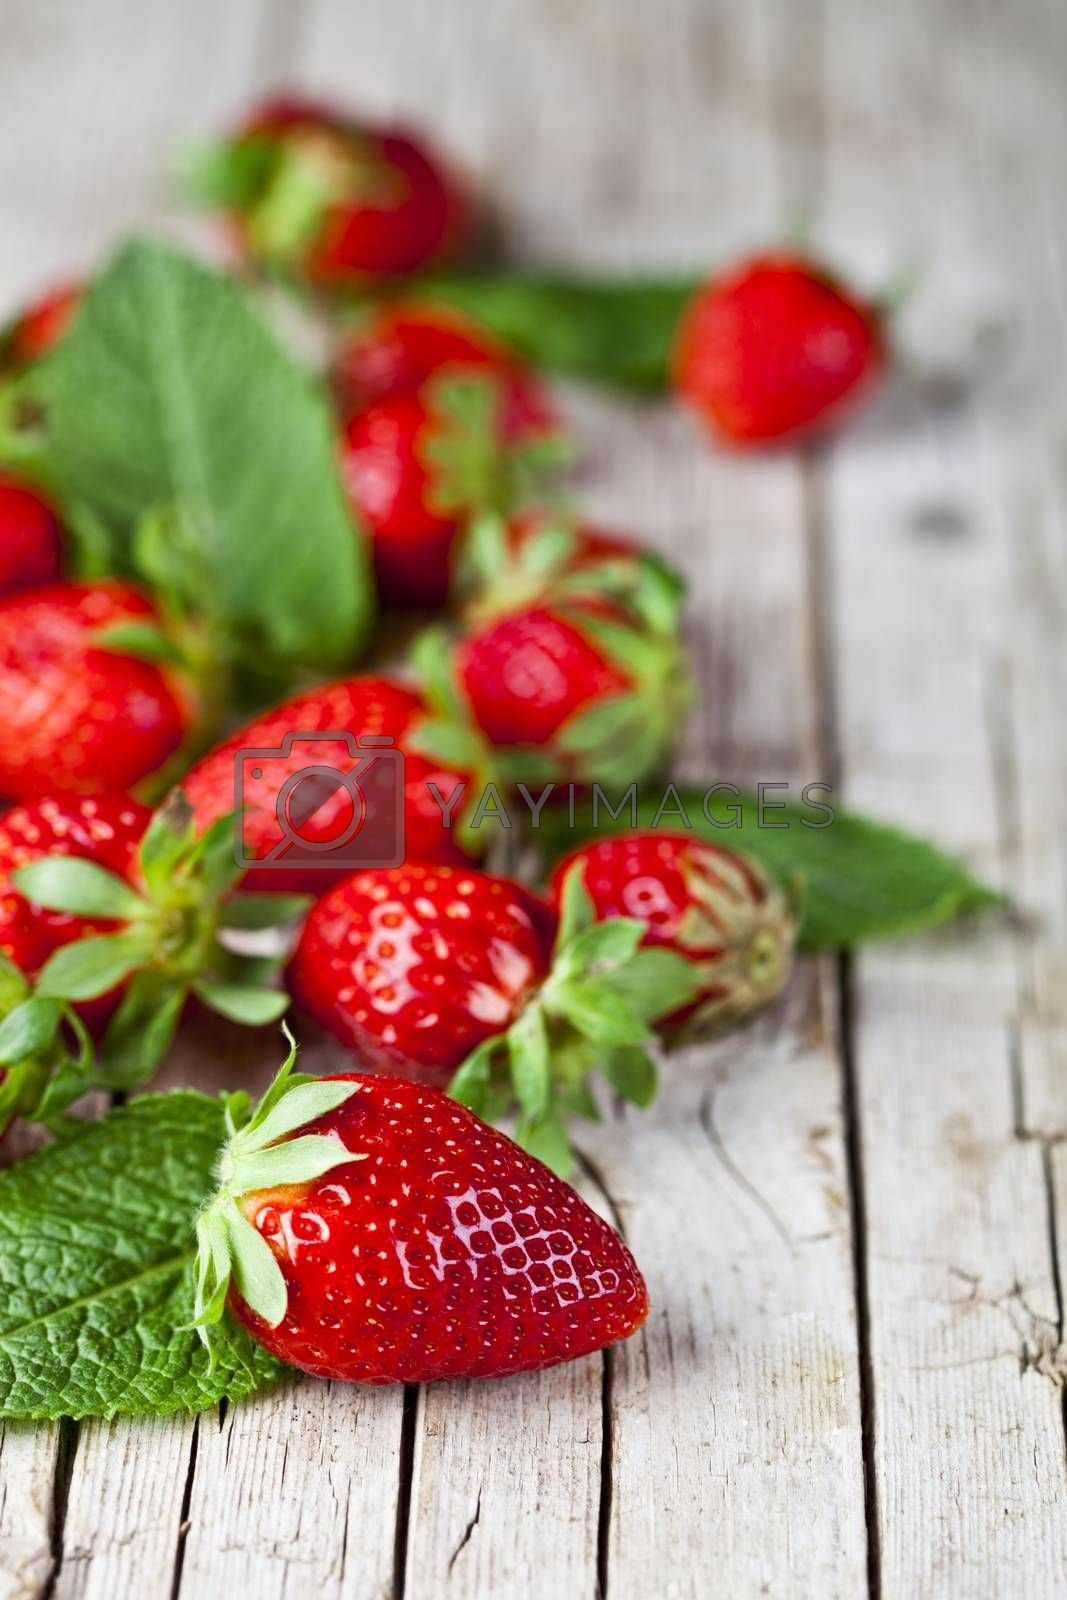 Fresh red strawberries and mint leaves on rustic wooden background. Healthy sweet food, vitamins and fruity concept.